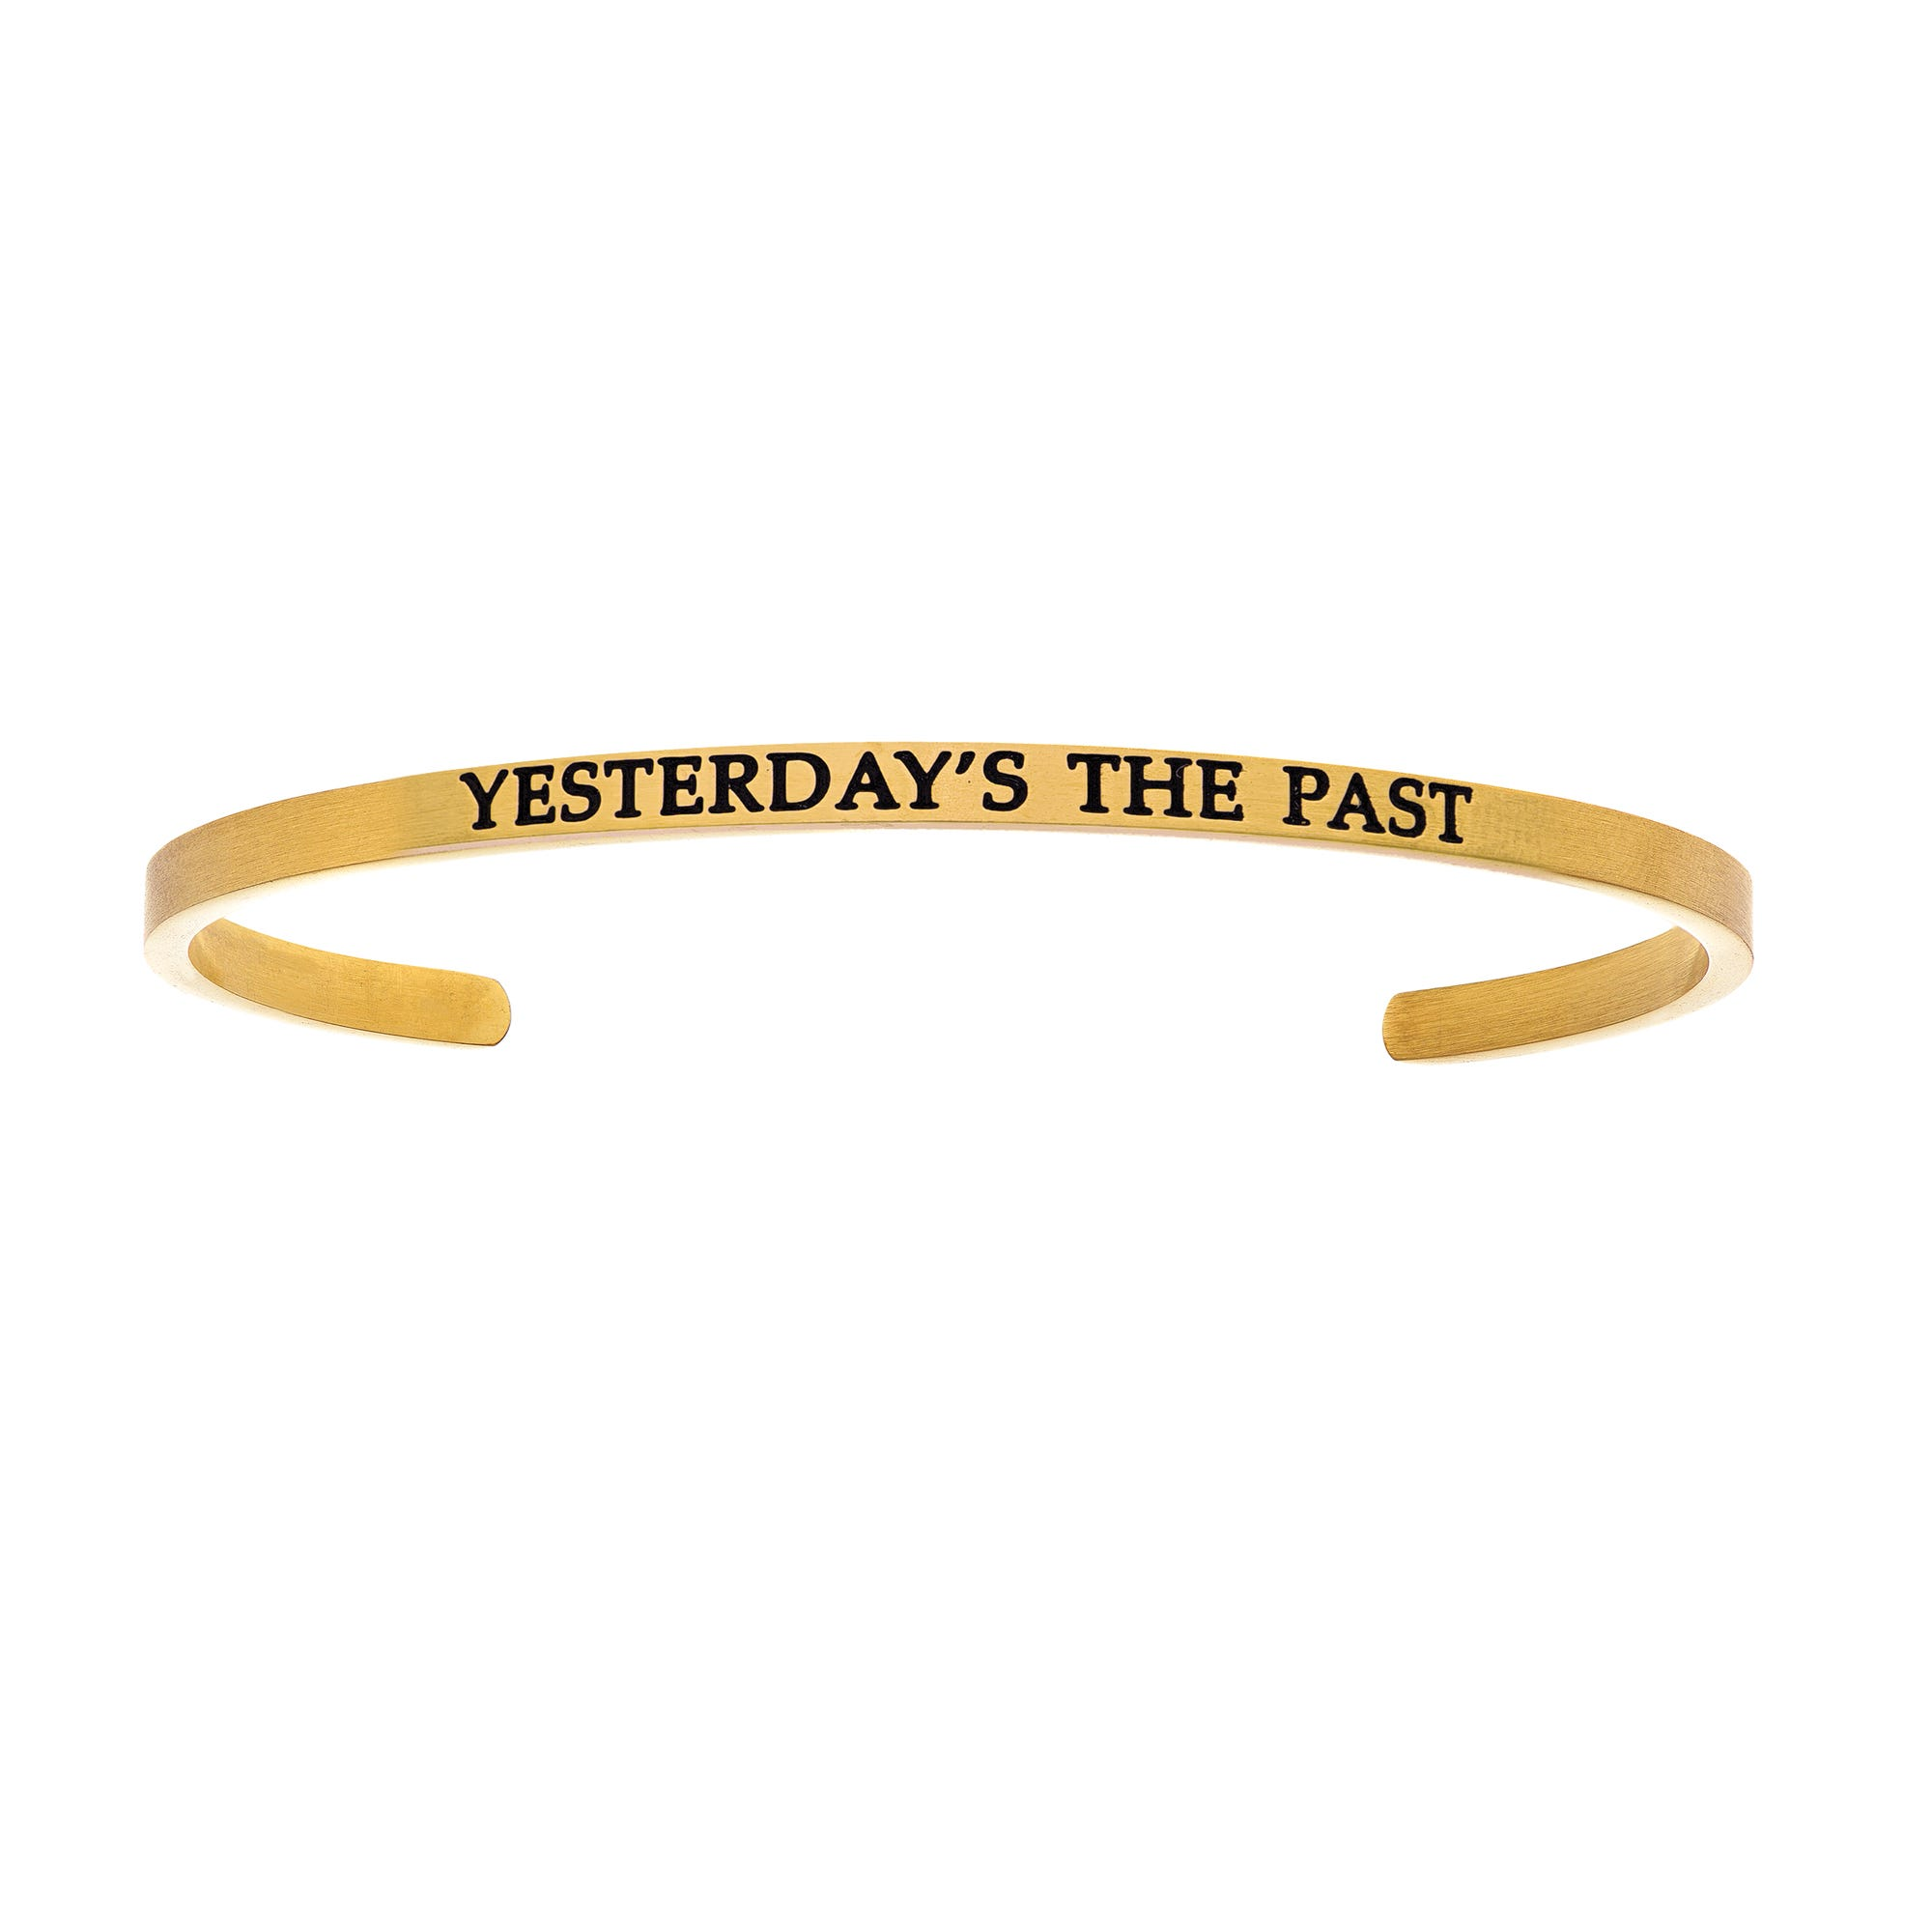 Yesterdays The Past. Intuitions Cuff Bracelet in Yellow Stainless Steel